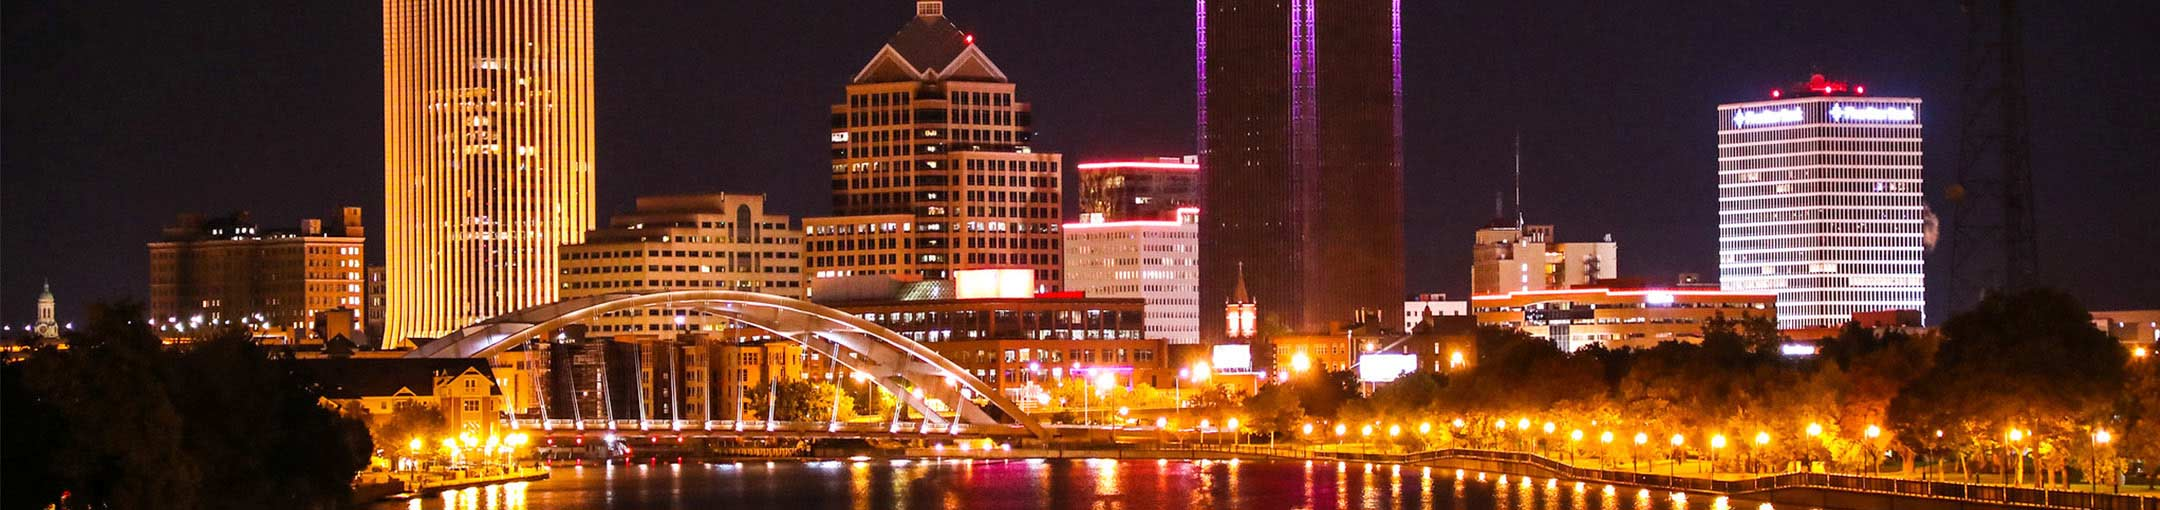 Skyline of Rochester New York at night